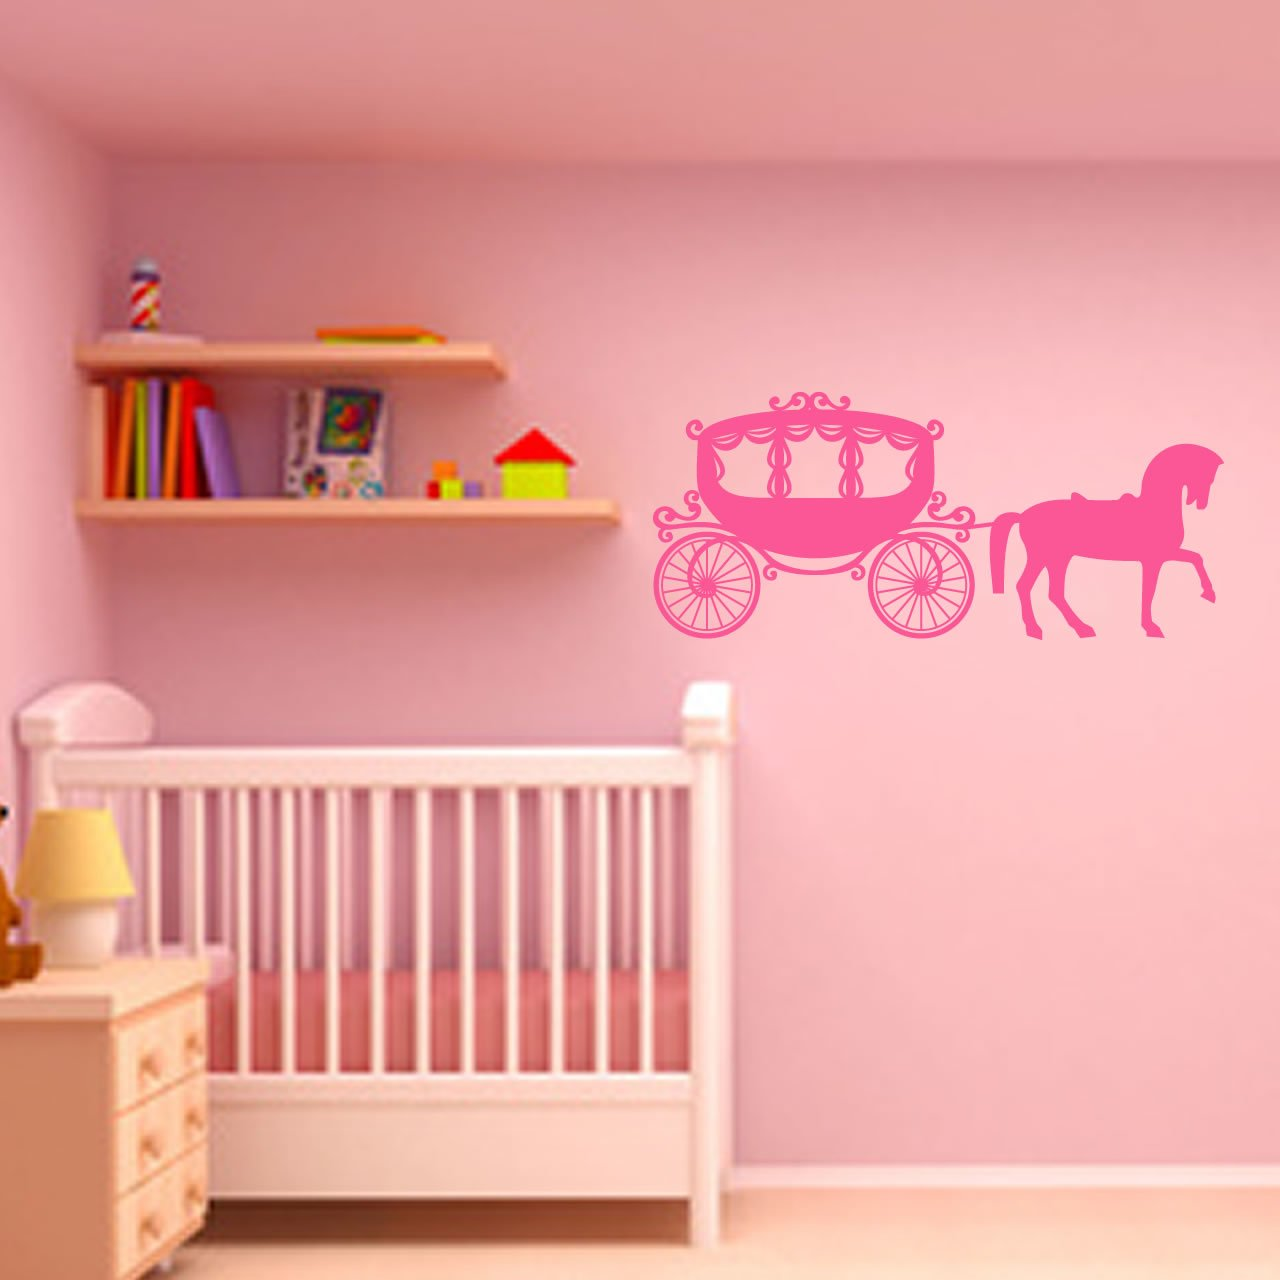 Fairytale princess carriage and horse childrens wall sticker fairytale princess carriage and horse childrens wall sticker world of wall stickers amipublicfo Gallery